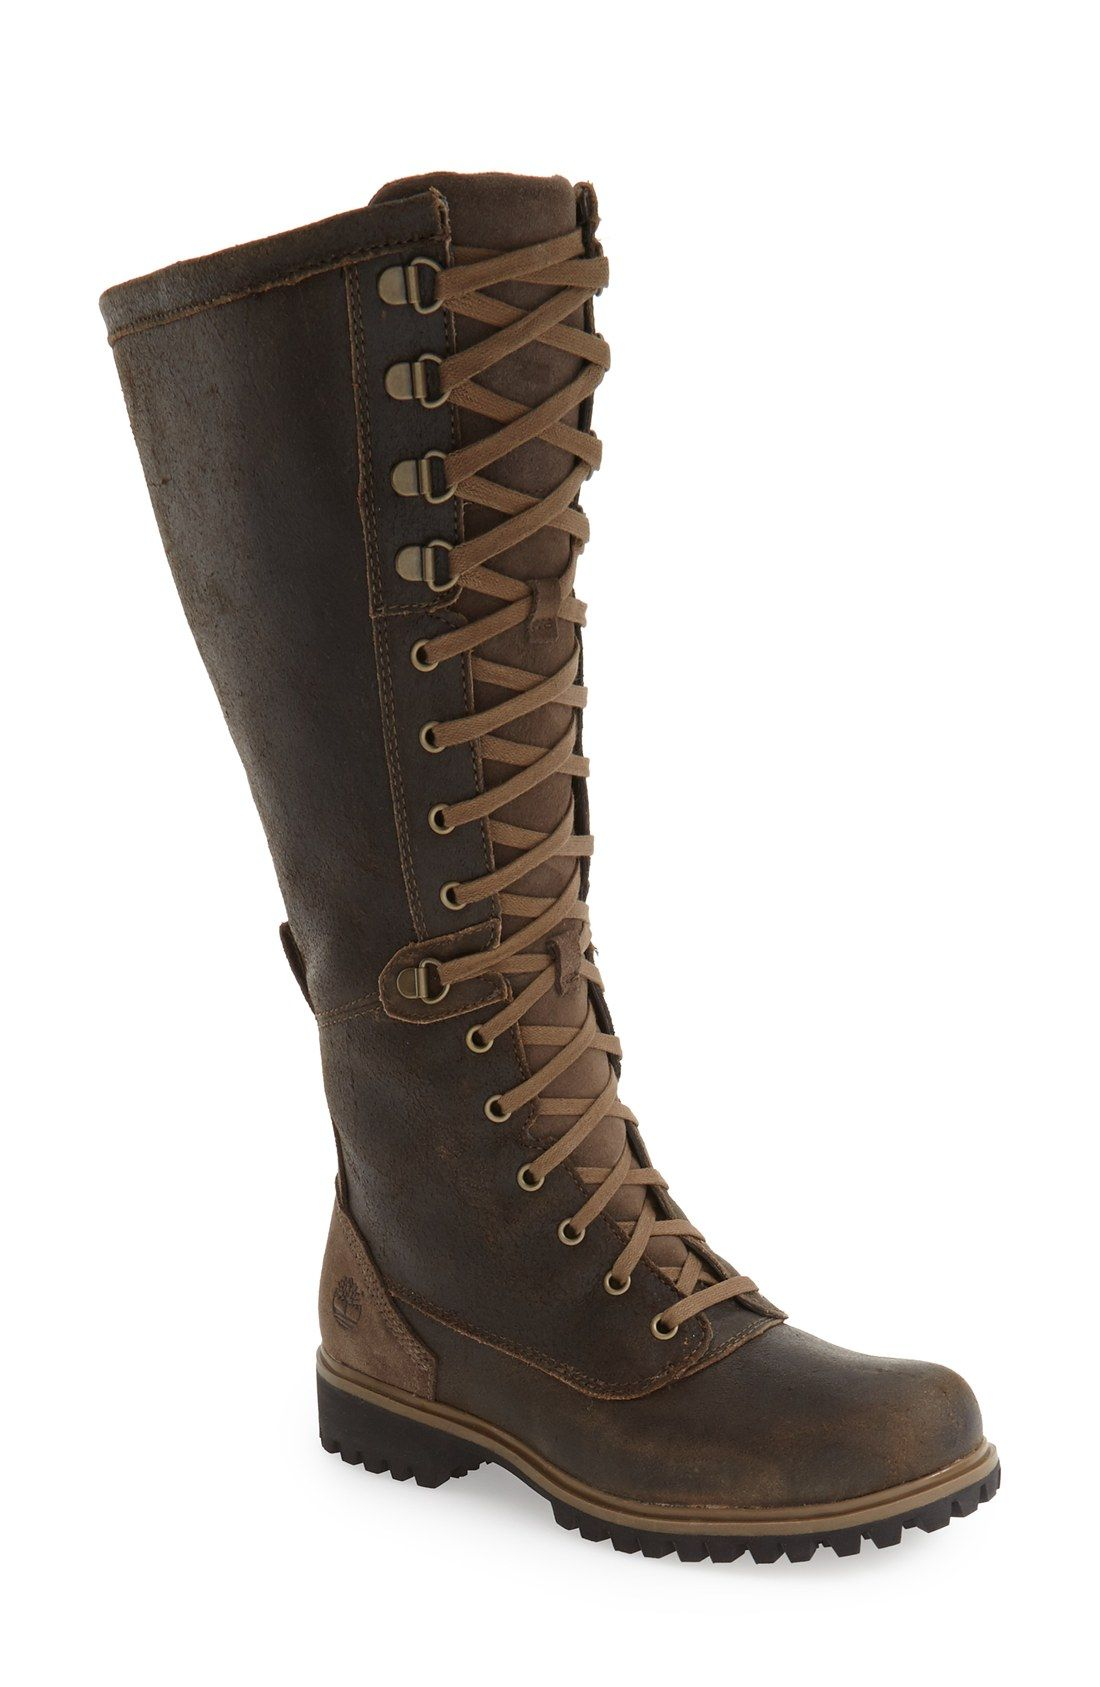 Timberland Boots Amp Shoes For Women Nordstrom Boots